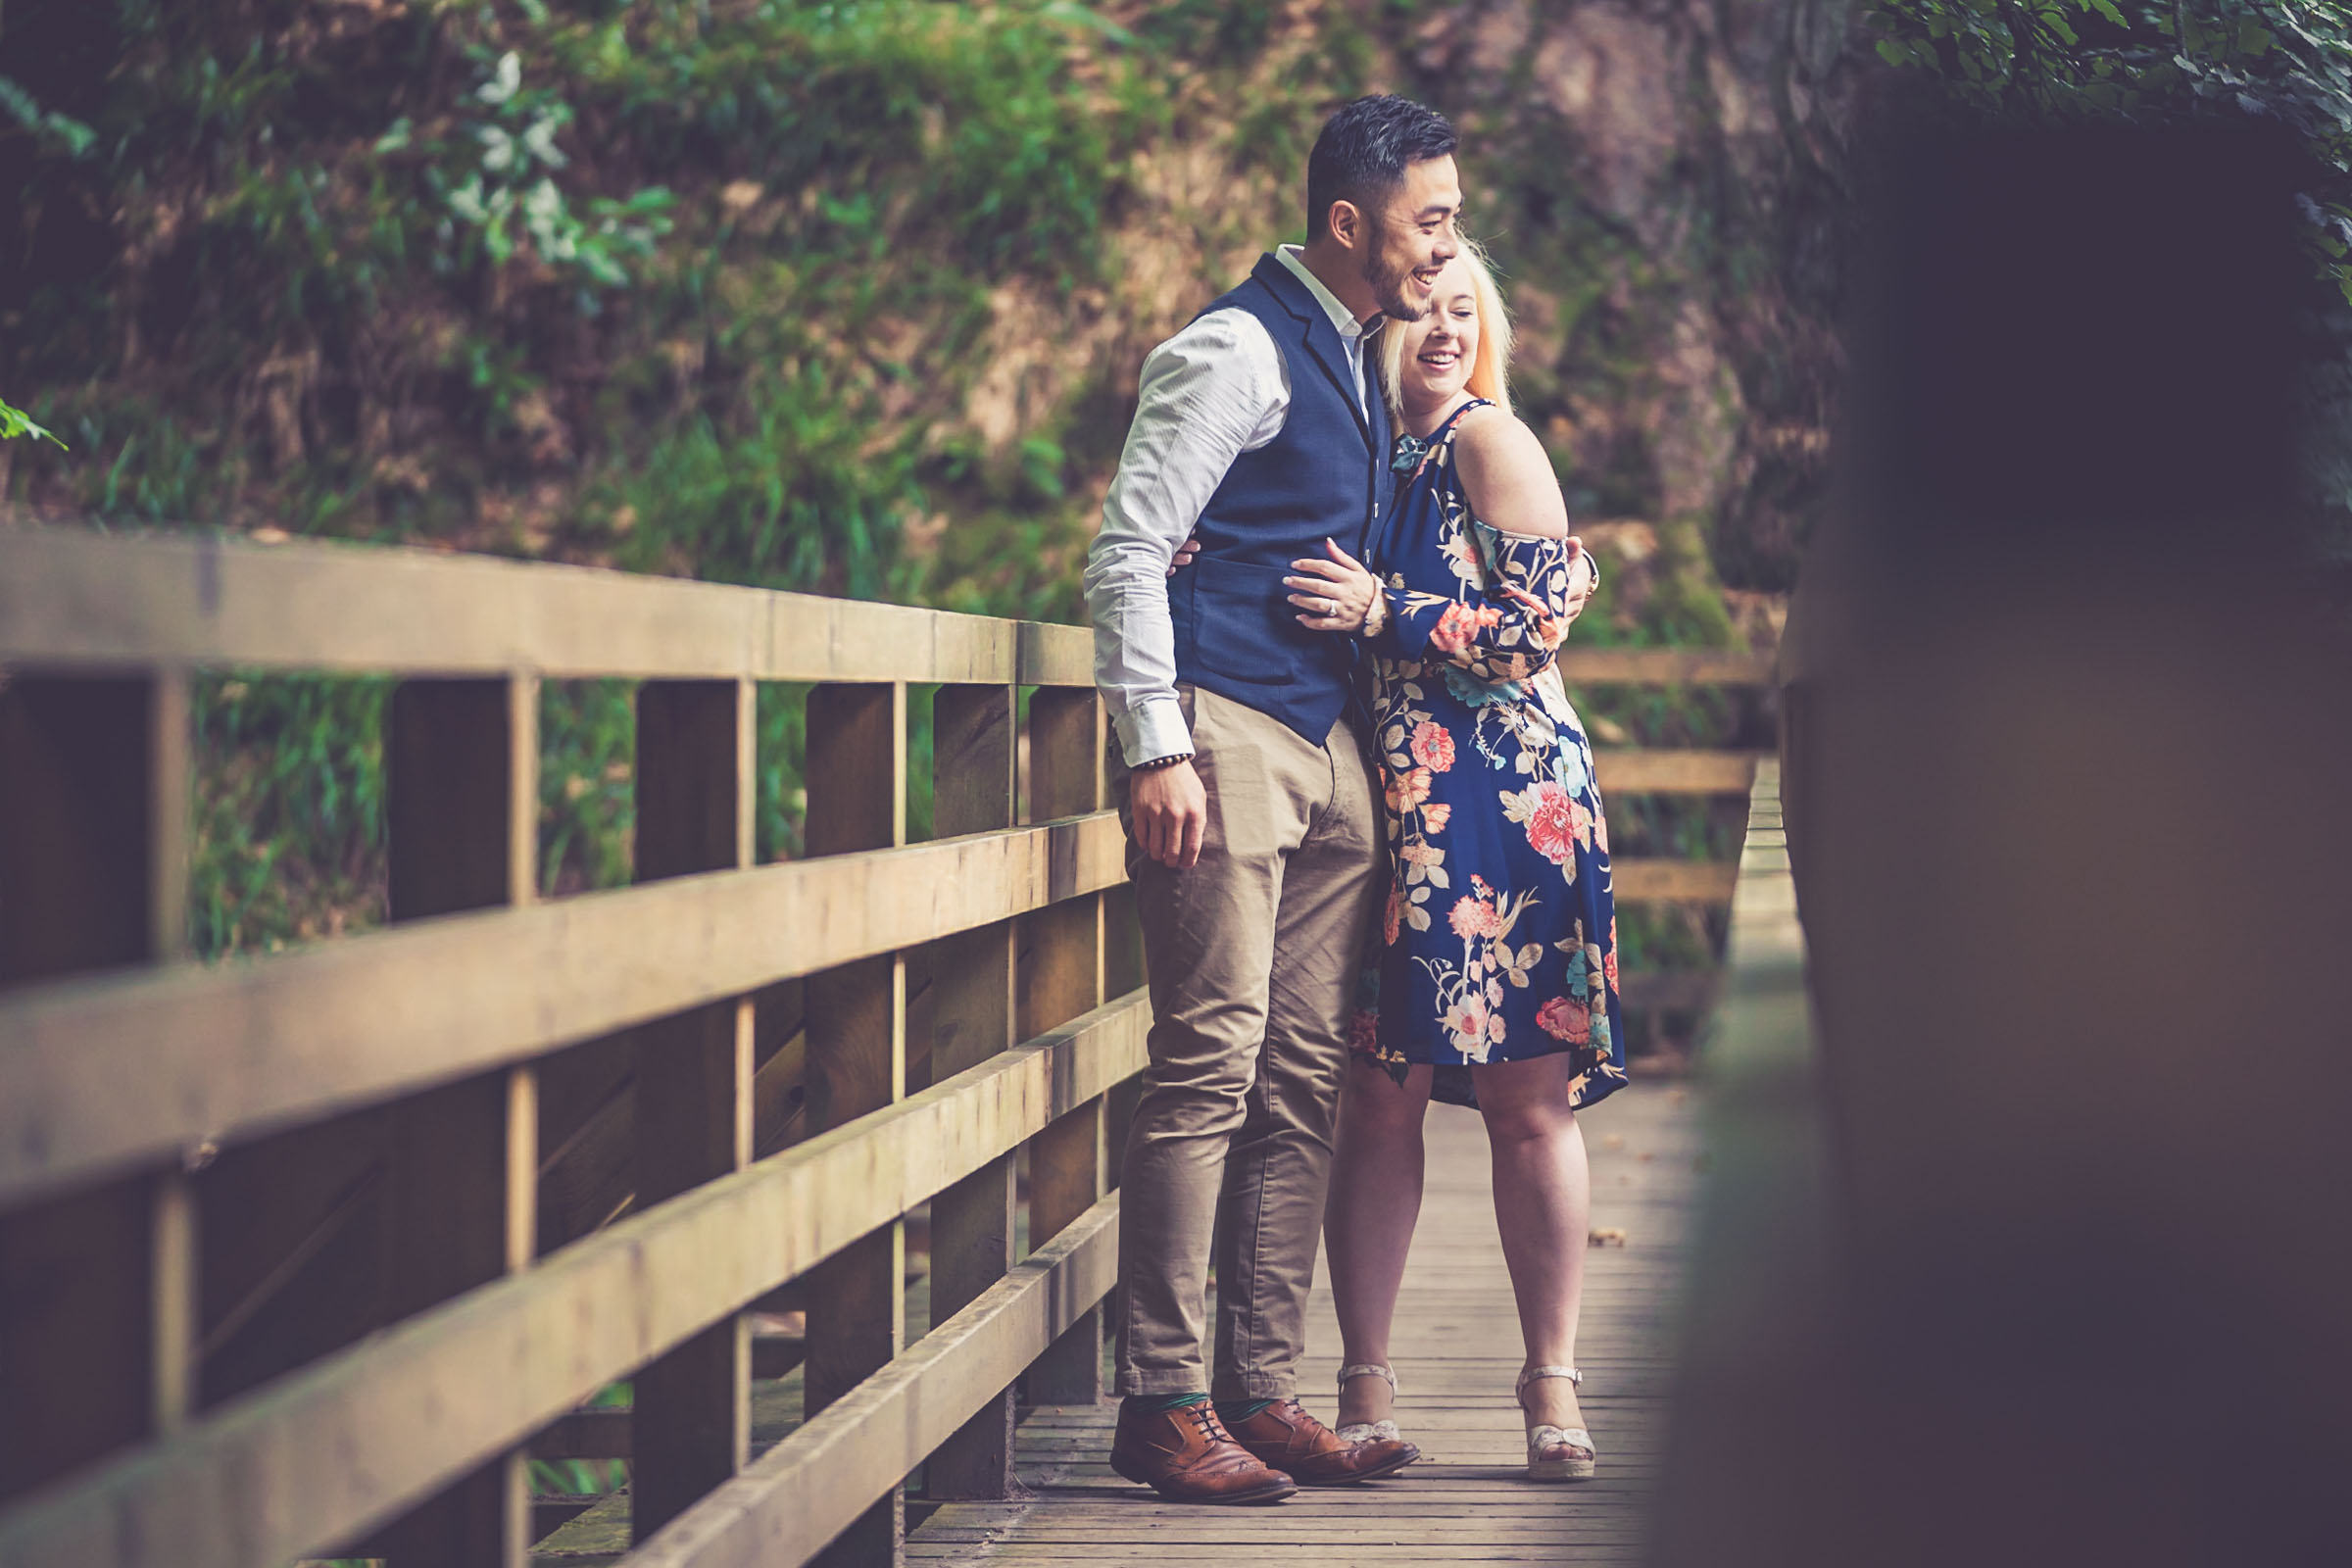 scottish-engagement-photography-elopement-dearlyphotography (5 of 45).jpg